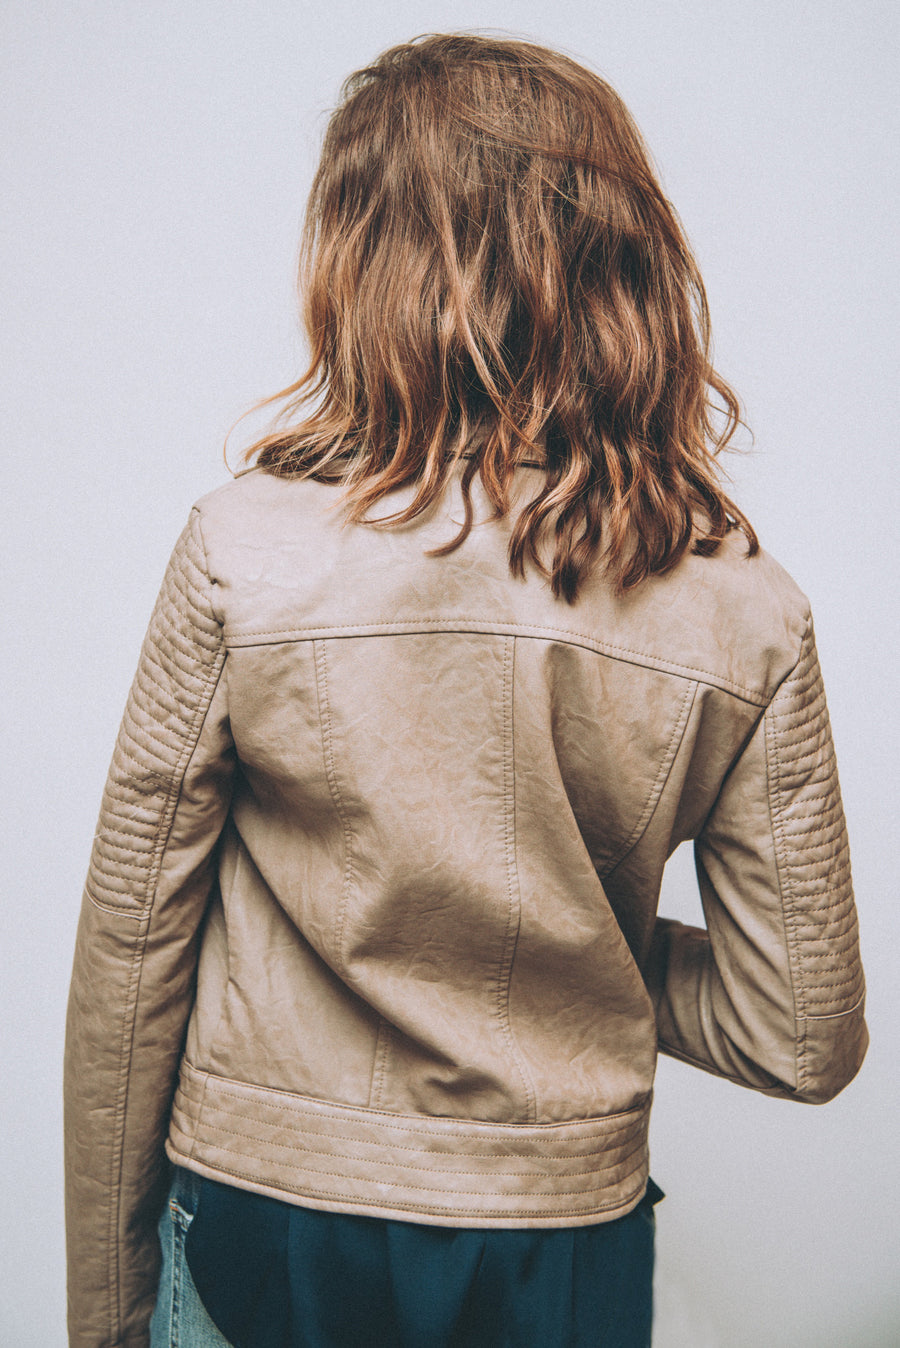 JACK BY BB DAKOTA: SEE YA LATER VEGAN LEATHER MOTO JACKET-HAZELNUT